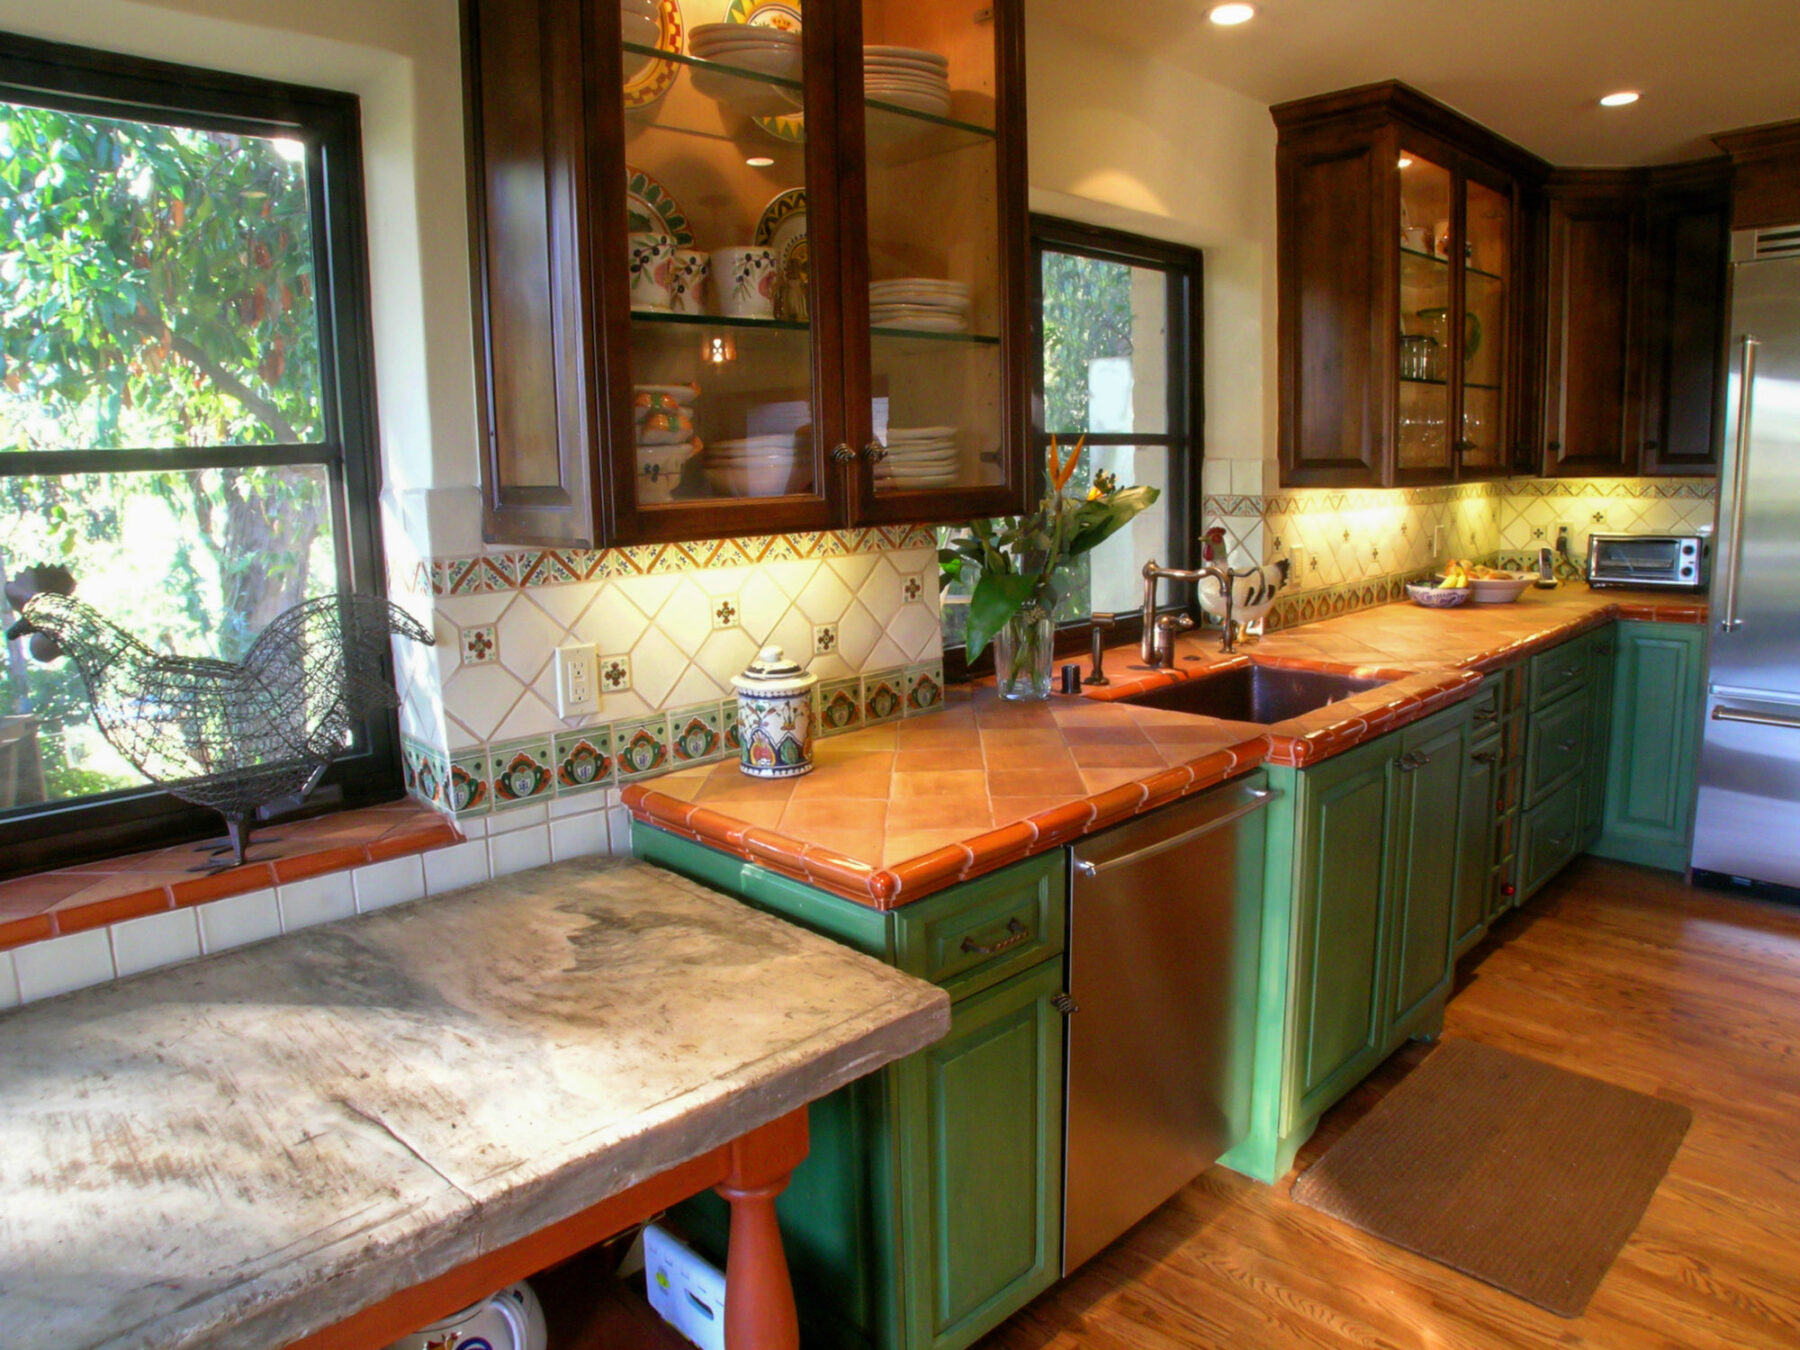 spanish style kitchen remodel with period features - Spanish Style Kitchen